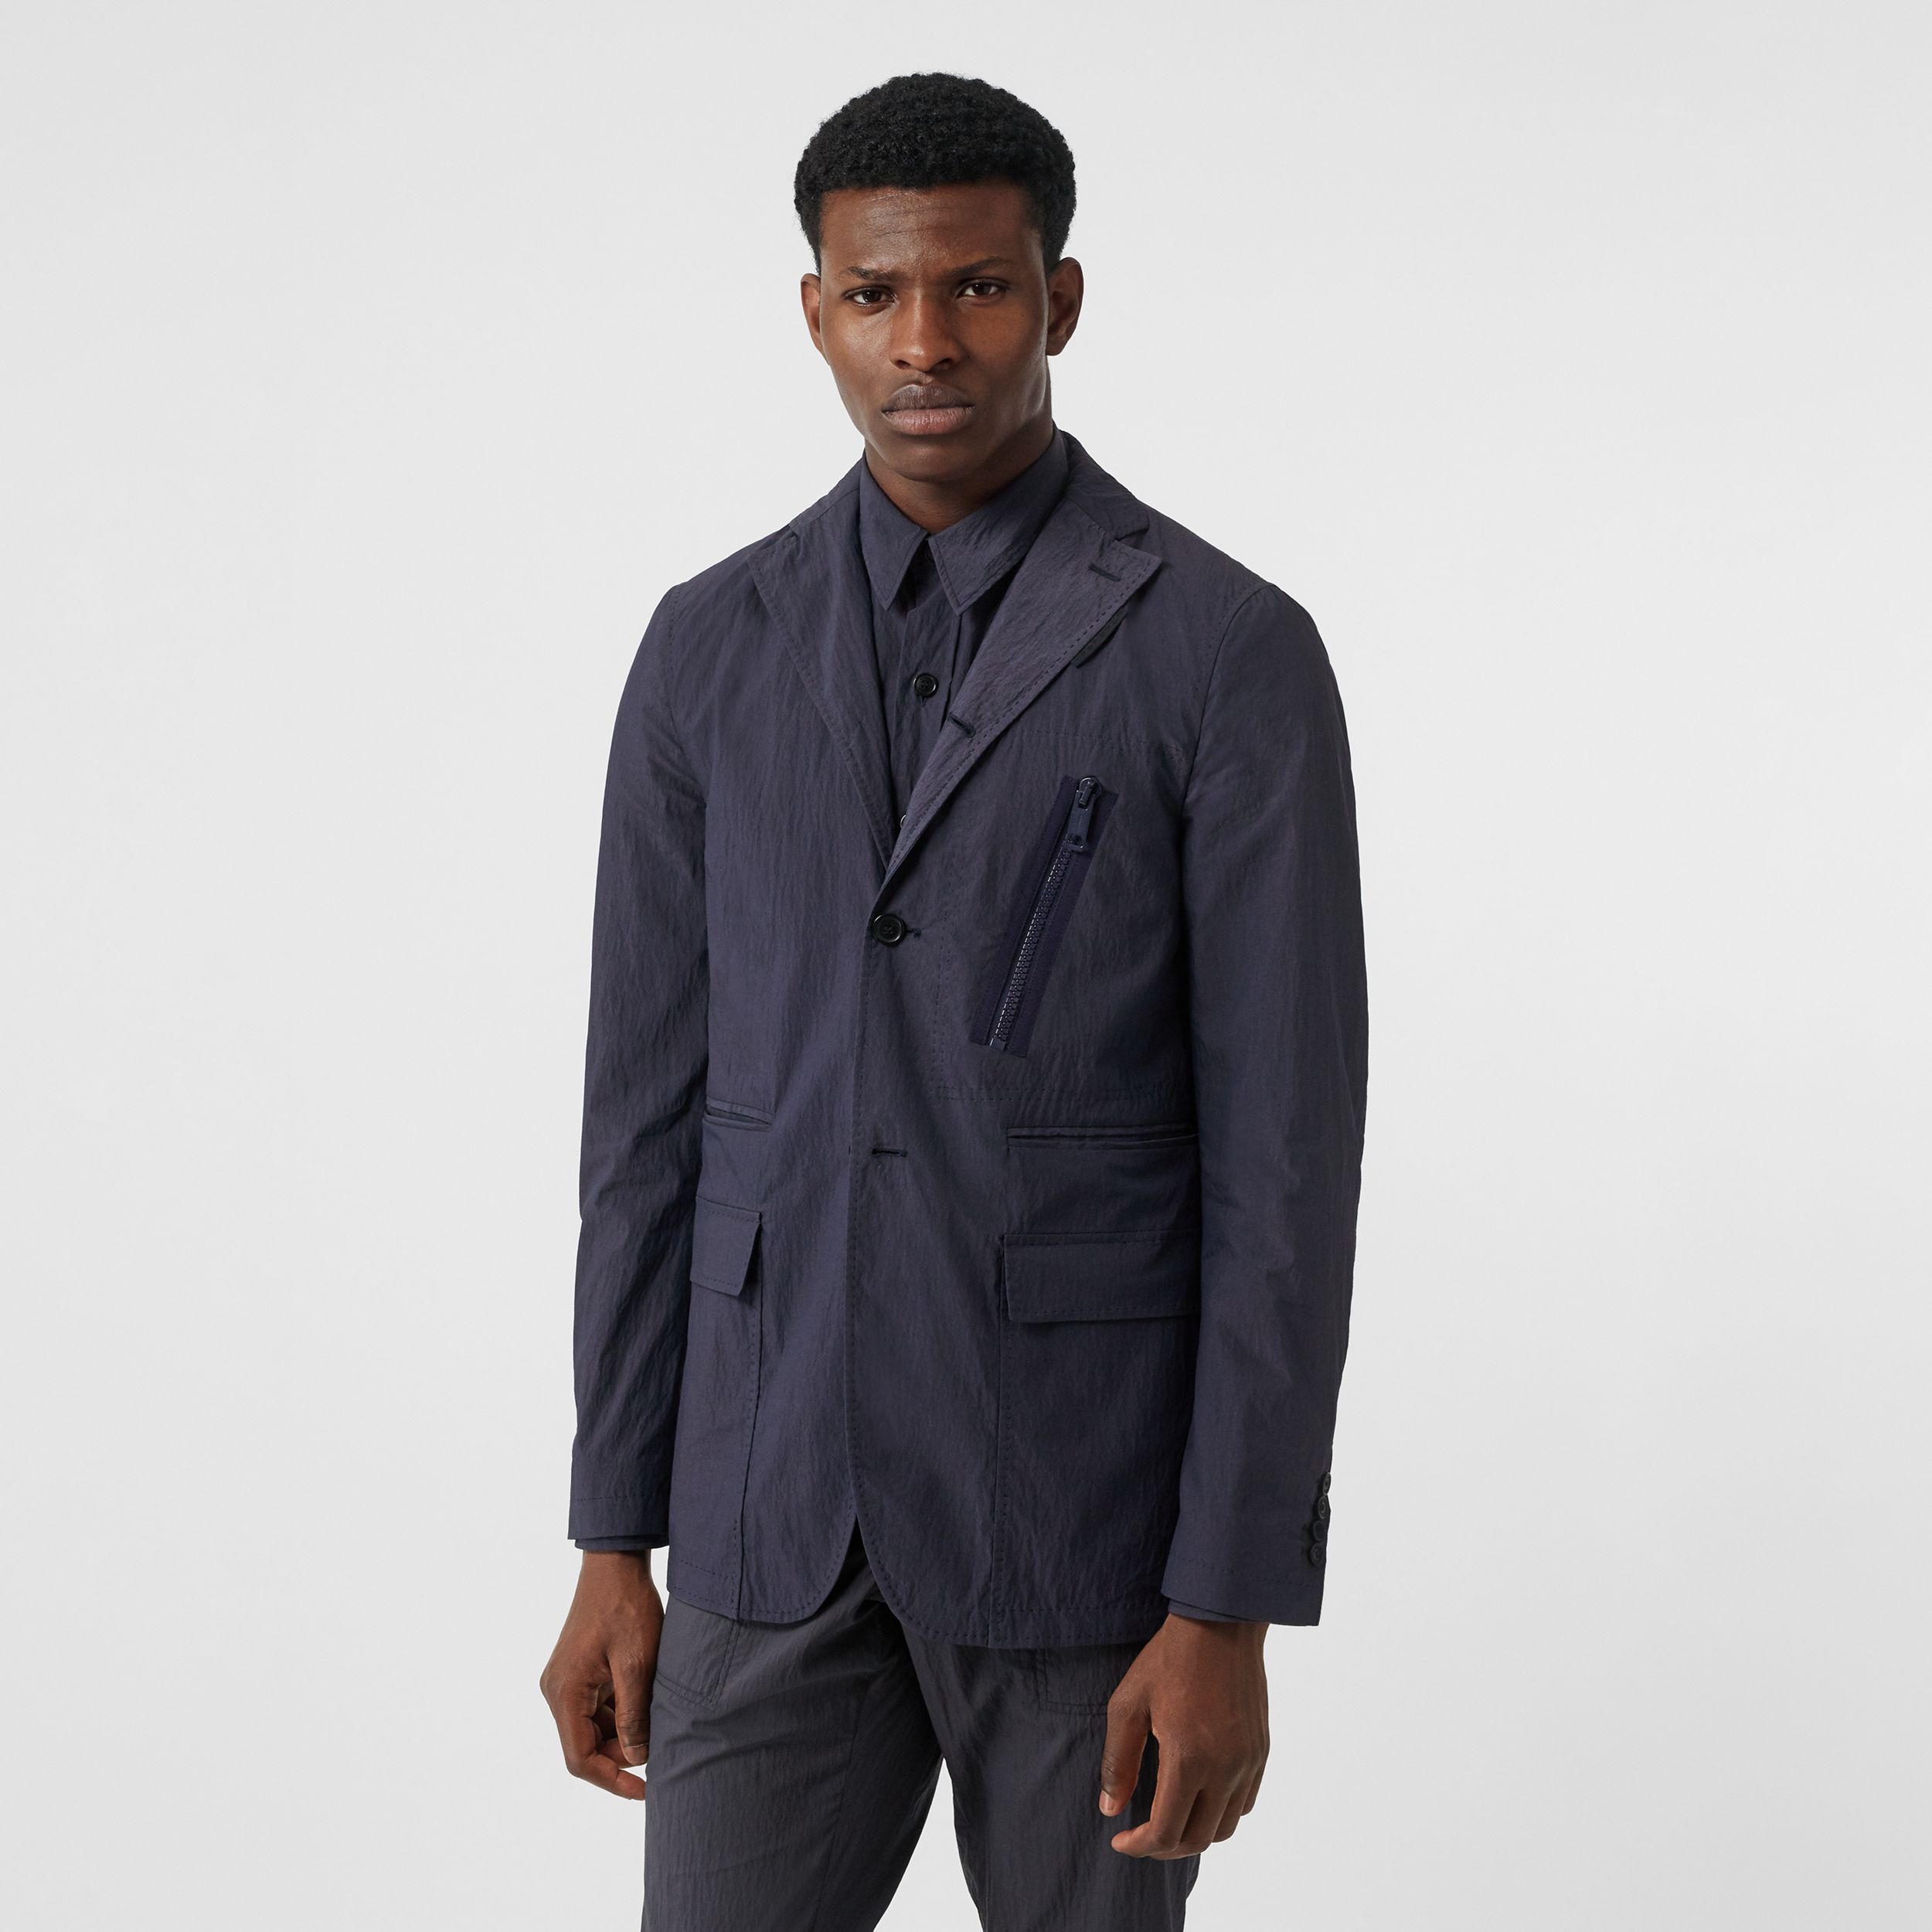 Crinkled Cotton Blend Tailored Jacket in Navy | Burberry - 1